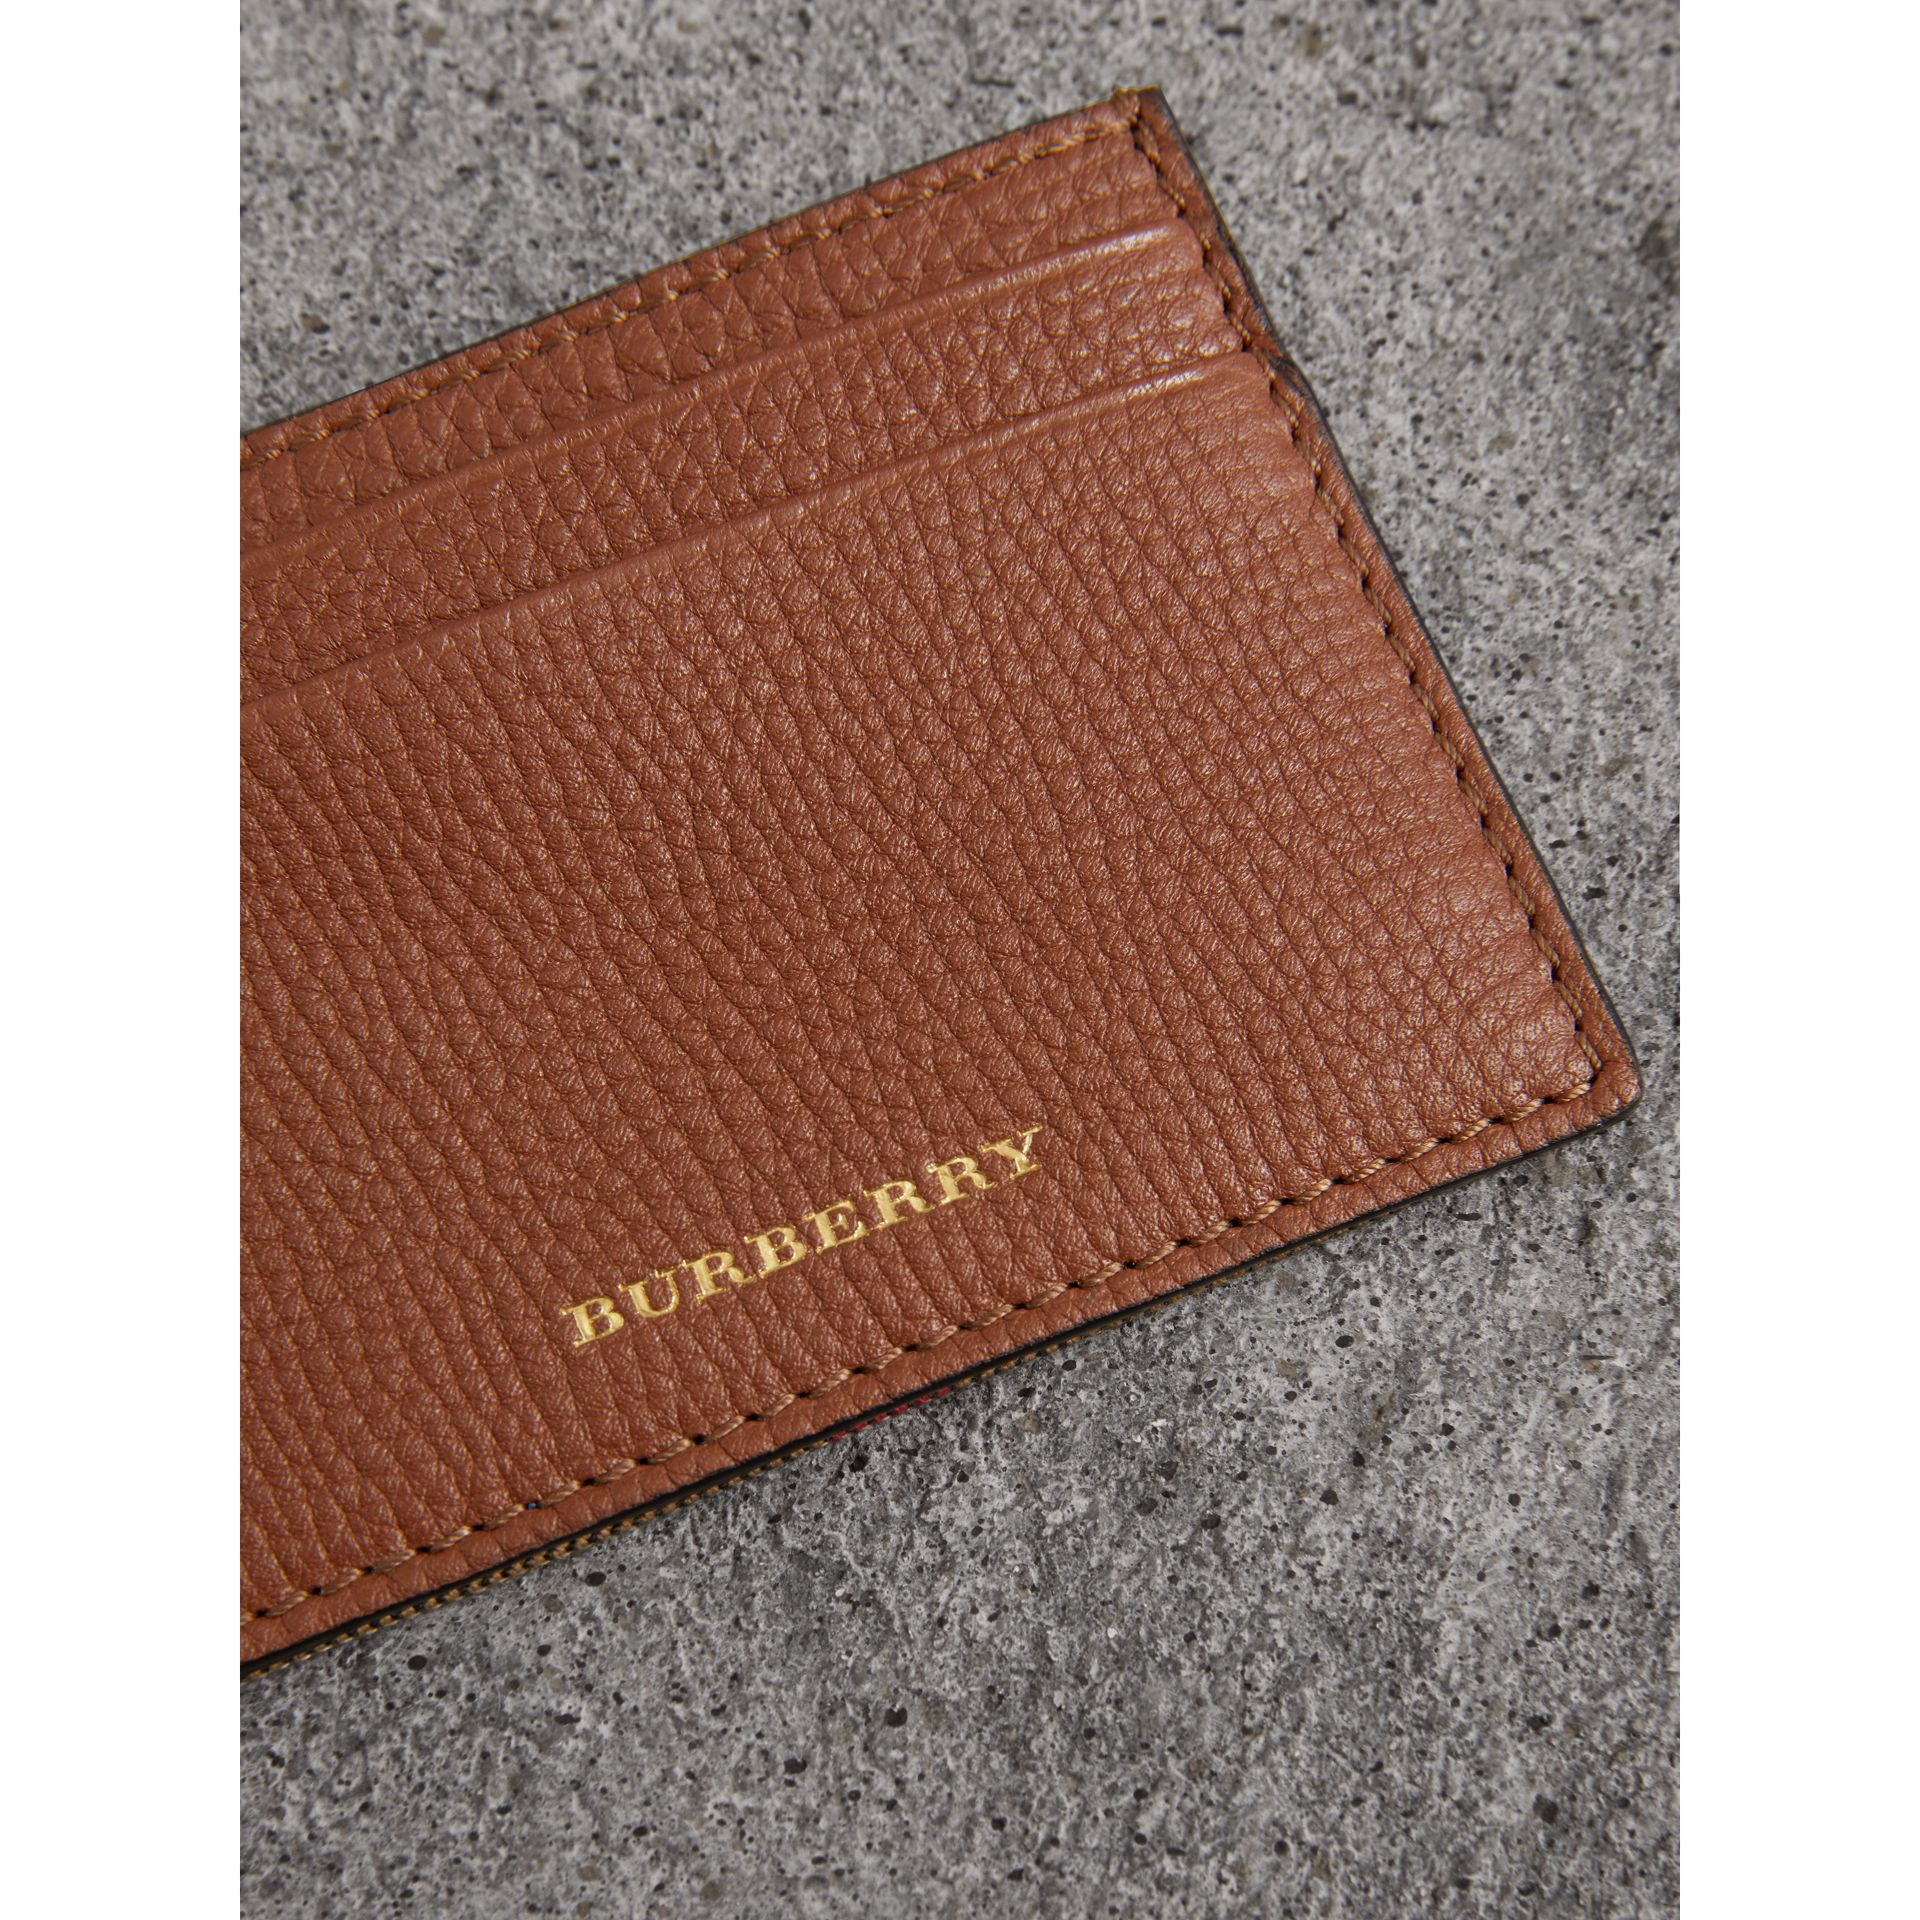 Porte-cartes en coton House check et cuir grainé (Brun Noisette) - Homme | Burberry - photo de la galerie 2